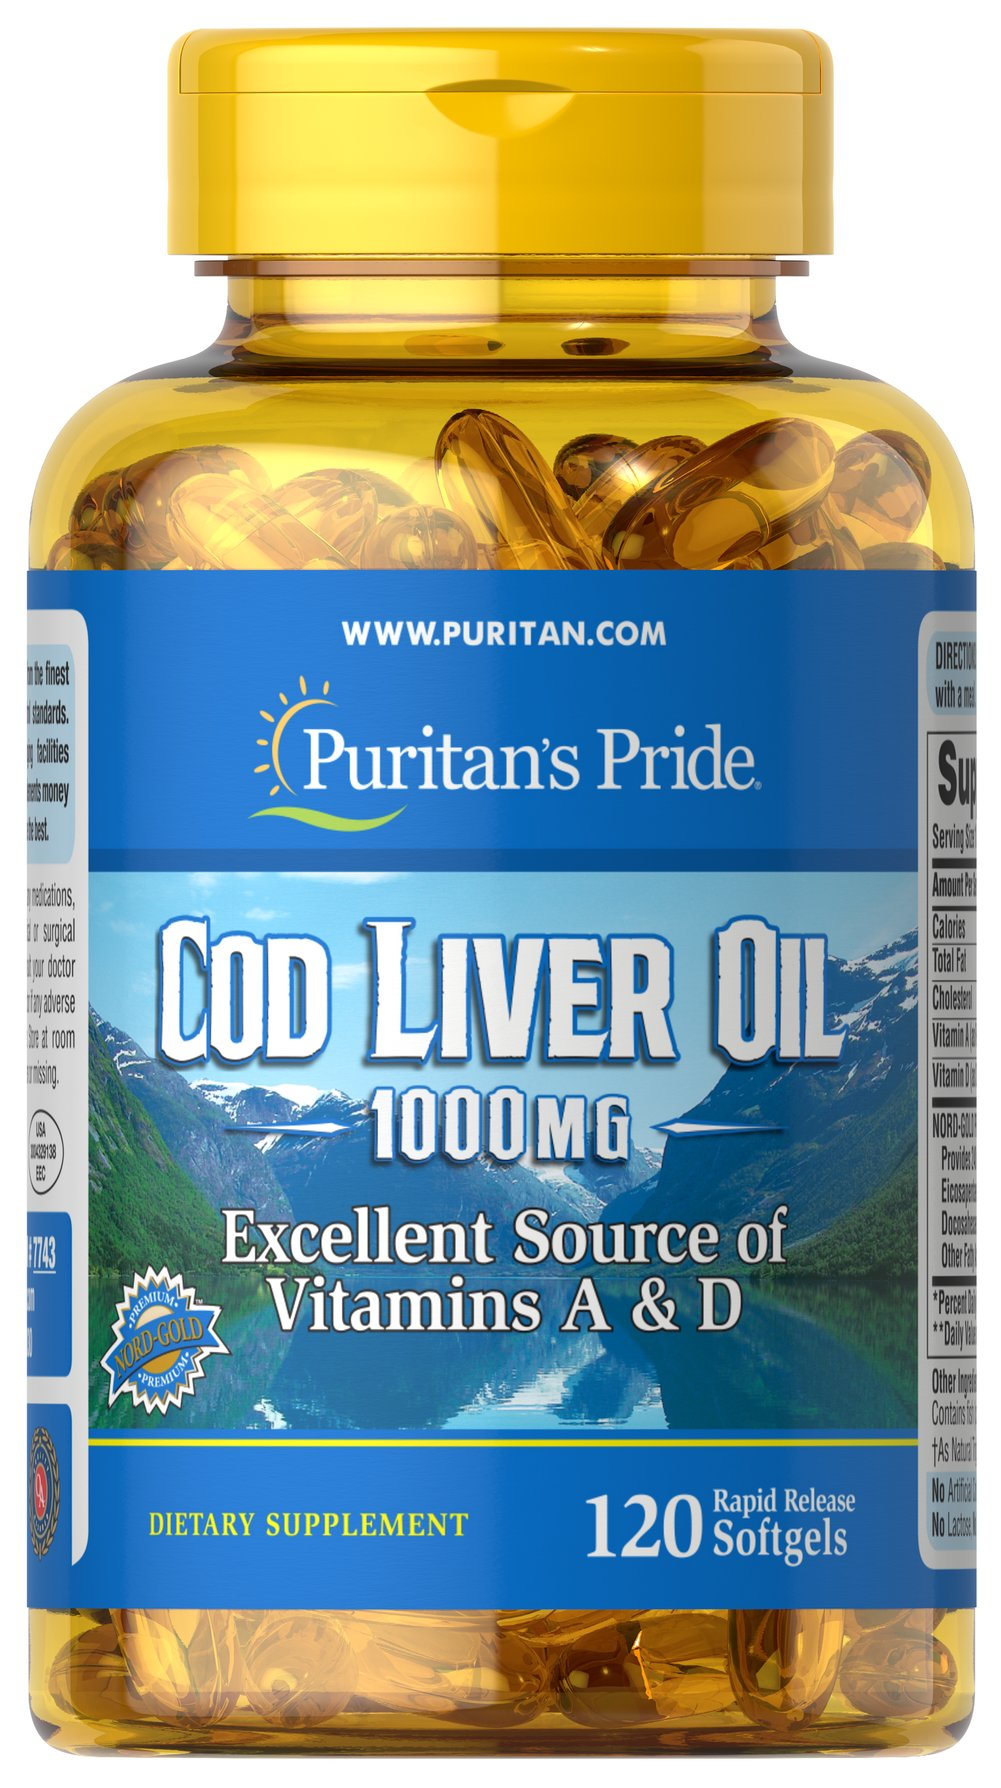 Cod Liver Oil 1000 mg <p>Norwegian cod has traditionally been one of the most popular natural sources of  <strong>both Vitamins A & D</strong>. </p><p>Vitamin D helps maintain healthy bones in adults. ** </p><p>Vitamin A helps maintain eye health. **</p><p>Vitamins A & D help regulate the immune system.**</p> 120 Softgels 1000 mg $22.99